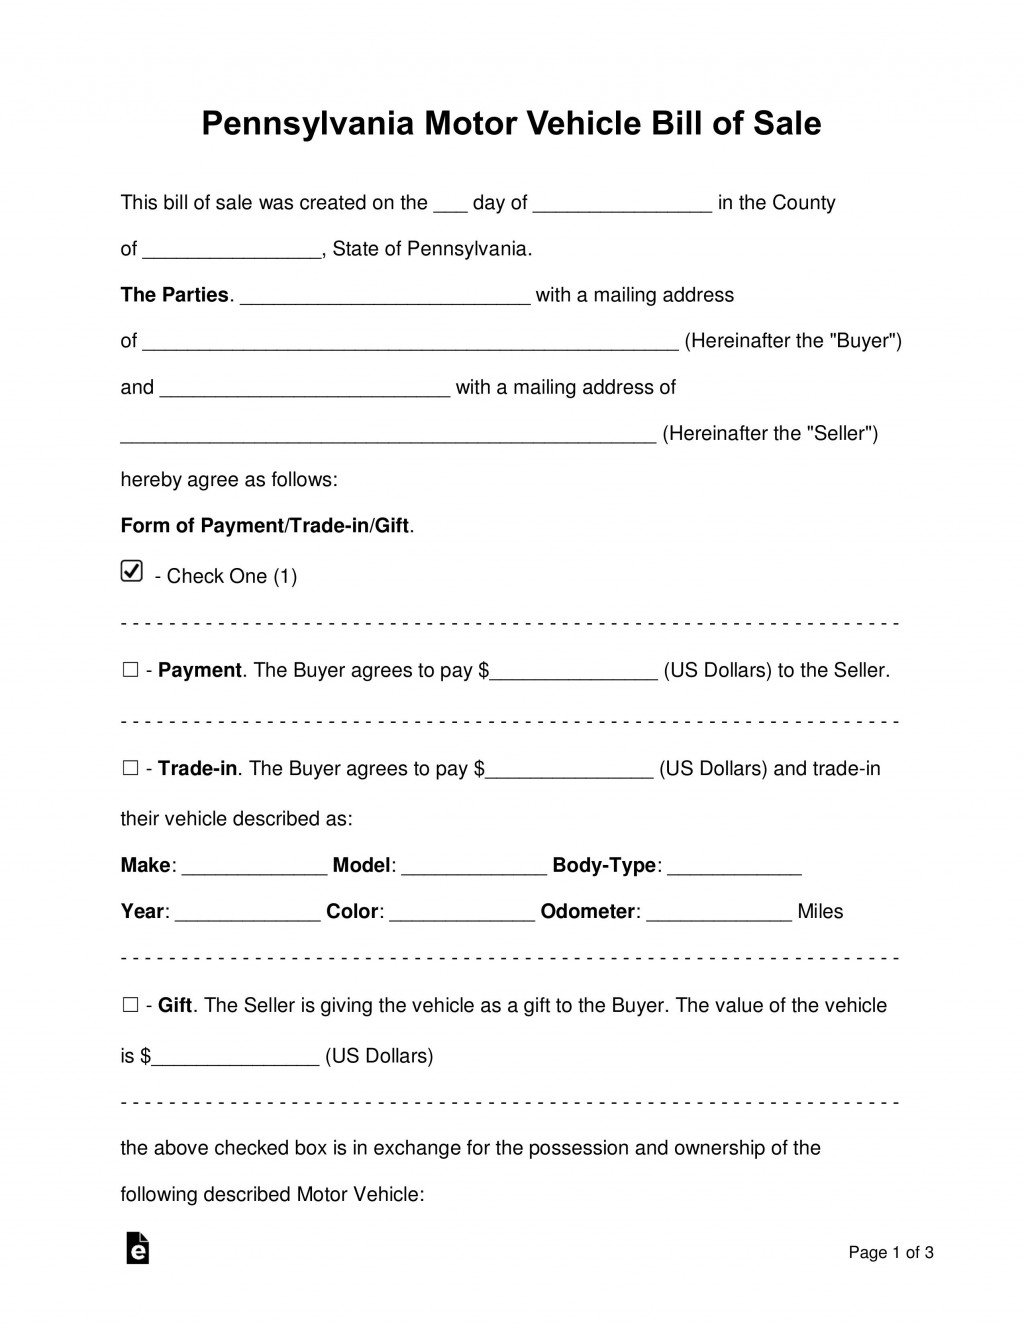 008 Singular Template For Bill Of Sale High Resolution  Example Trailer Free Mobile Home Used CarLarge